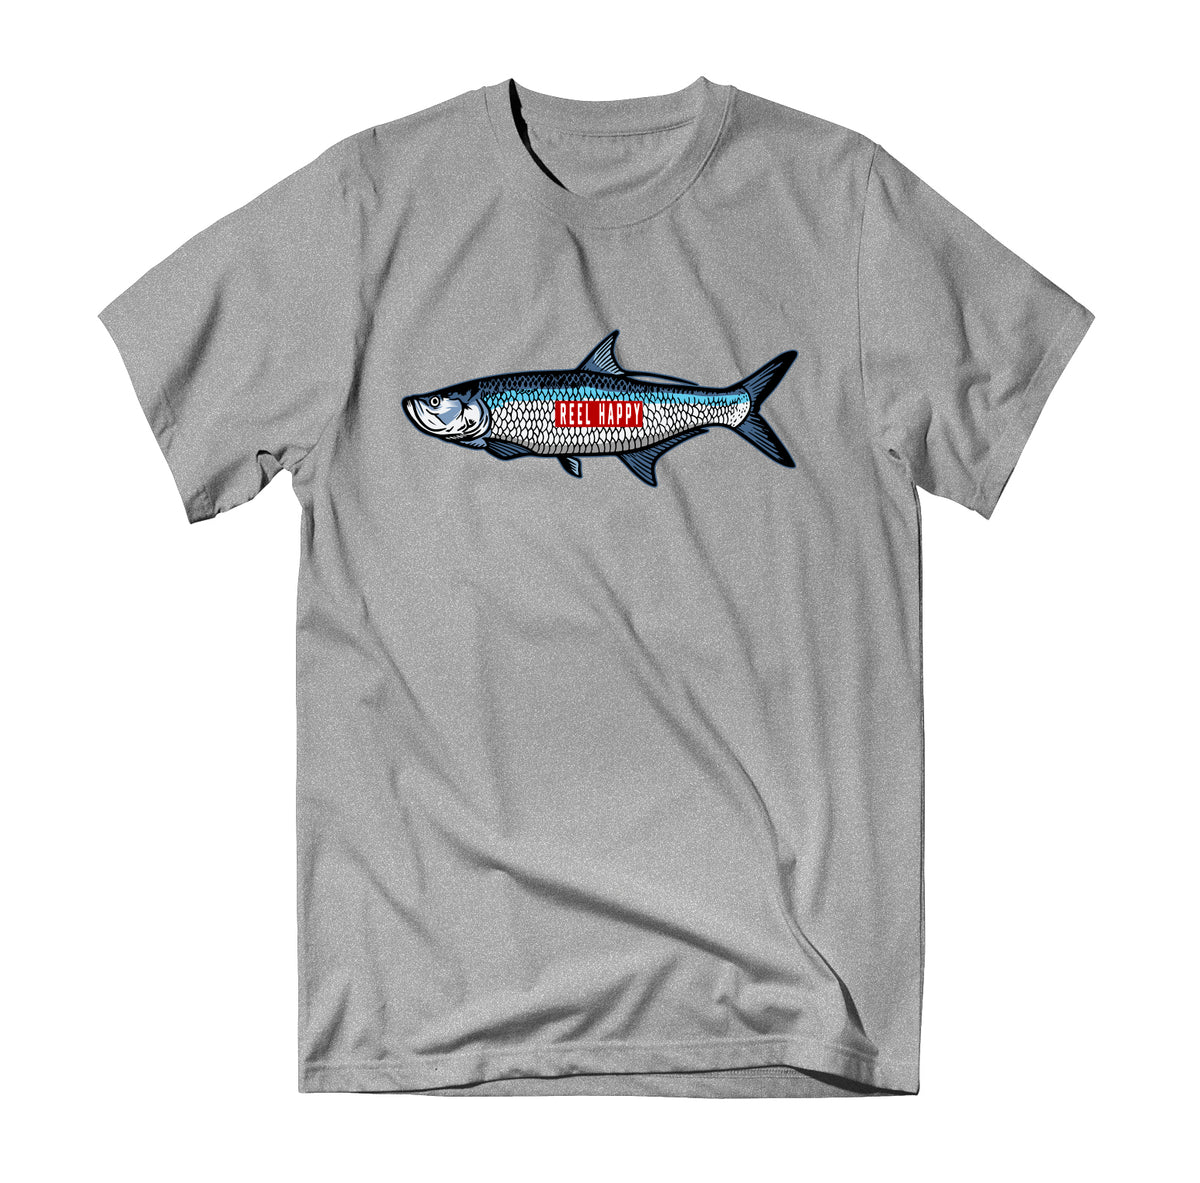 GS Tarpon Tee - Heather Grey - Reel Happy Co